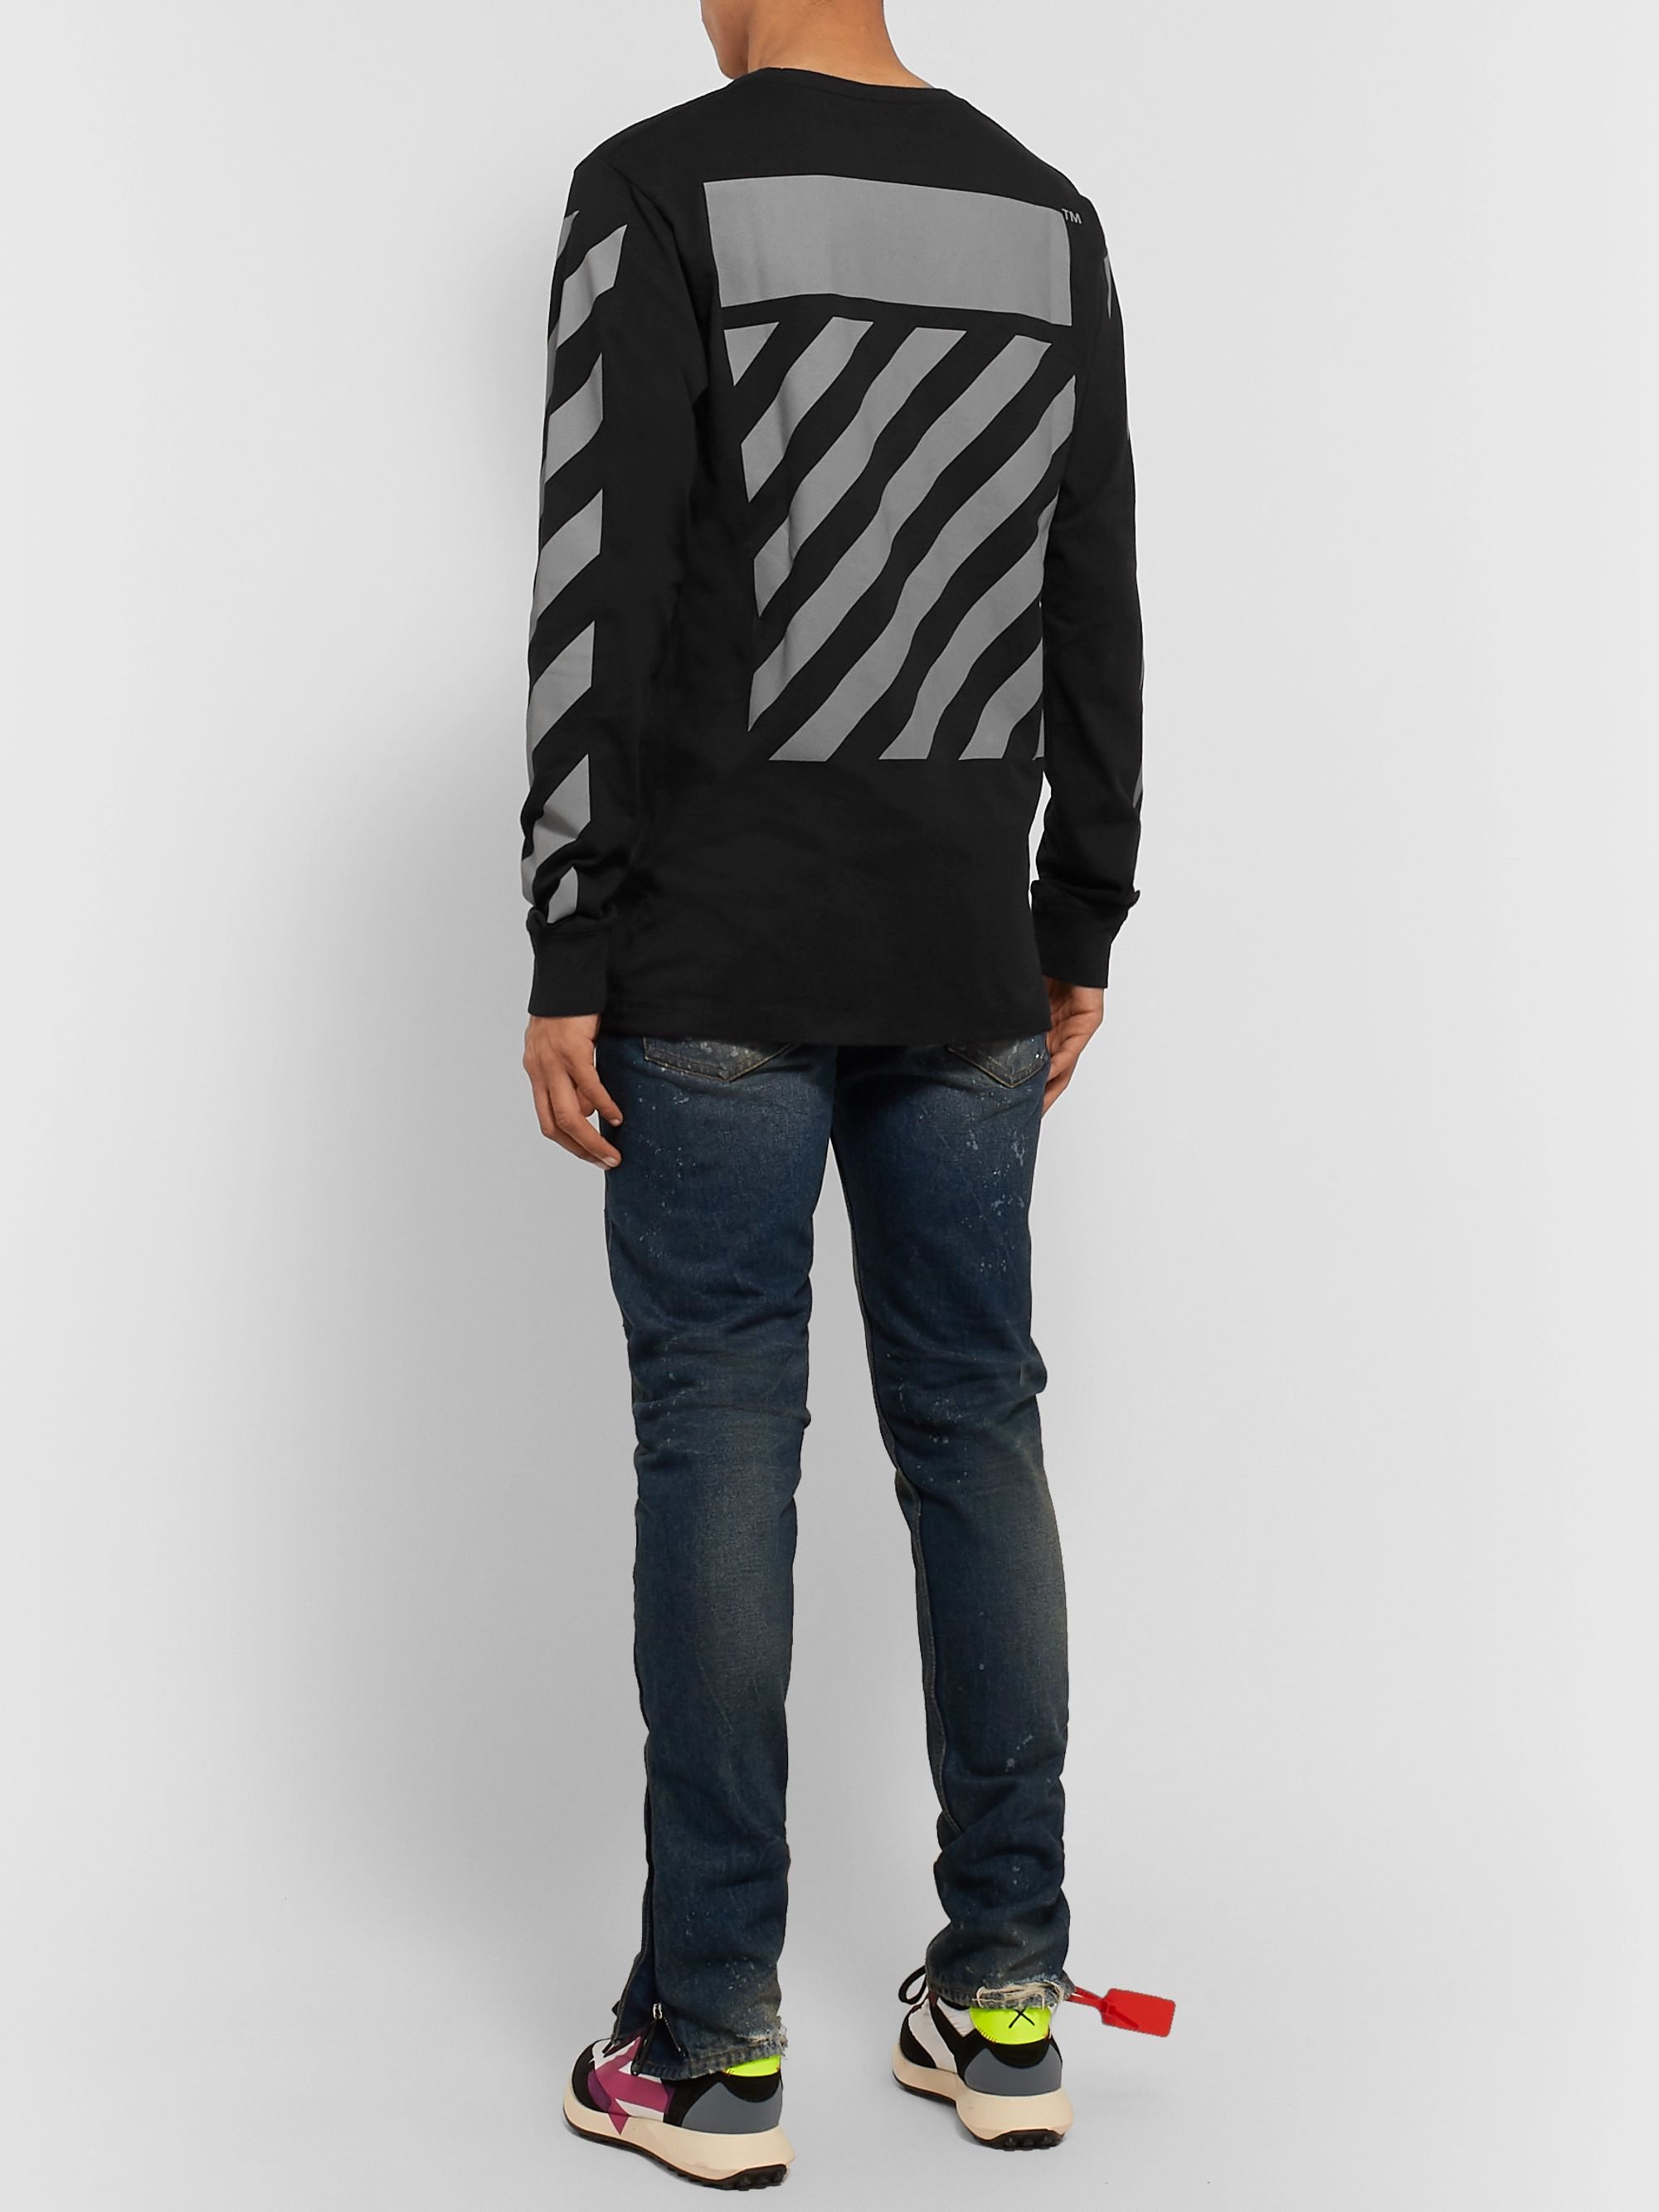 Off-White Glow-In-The-Dark Printed Cotton-Jersey T-Shirt